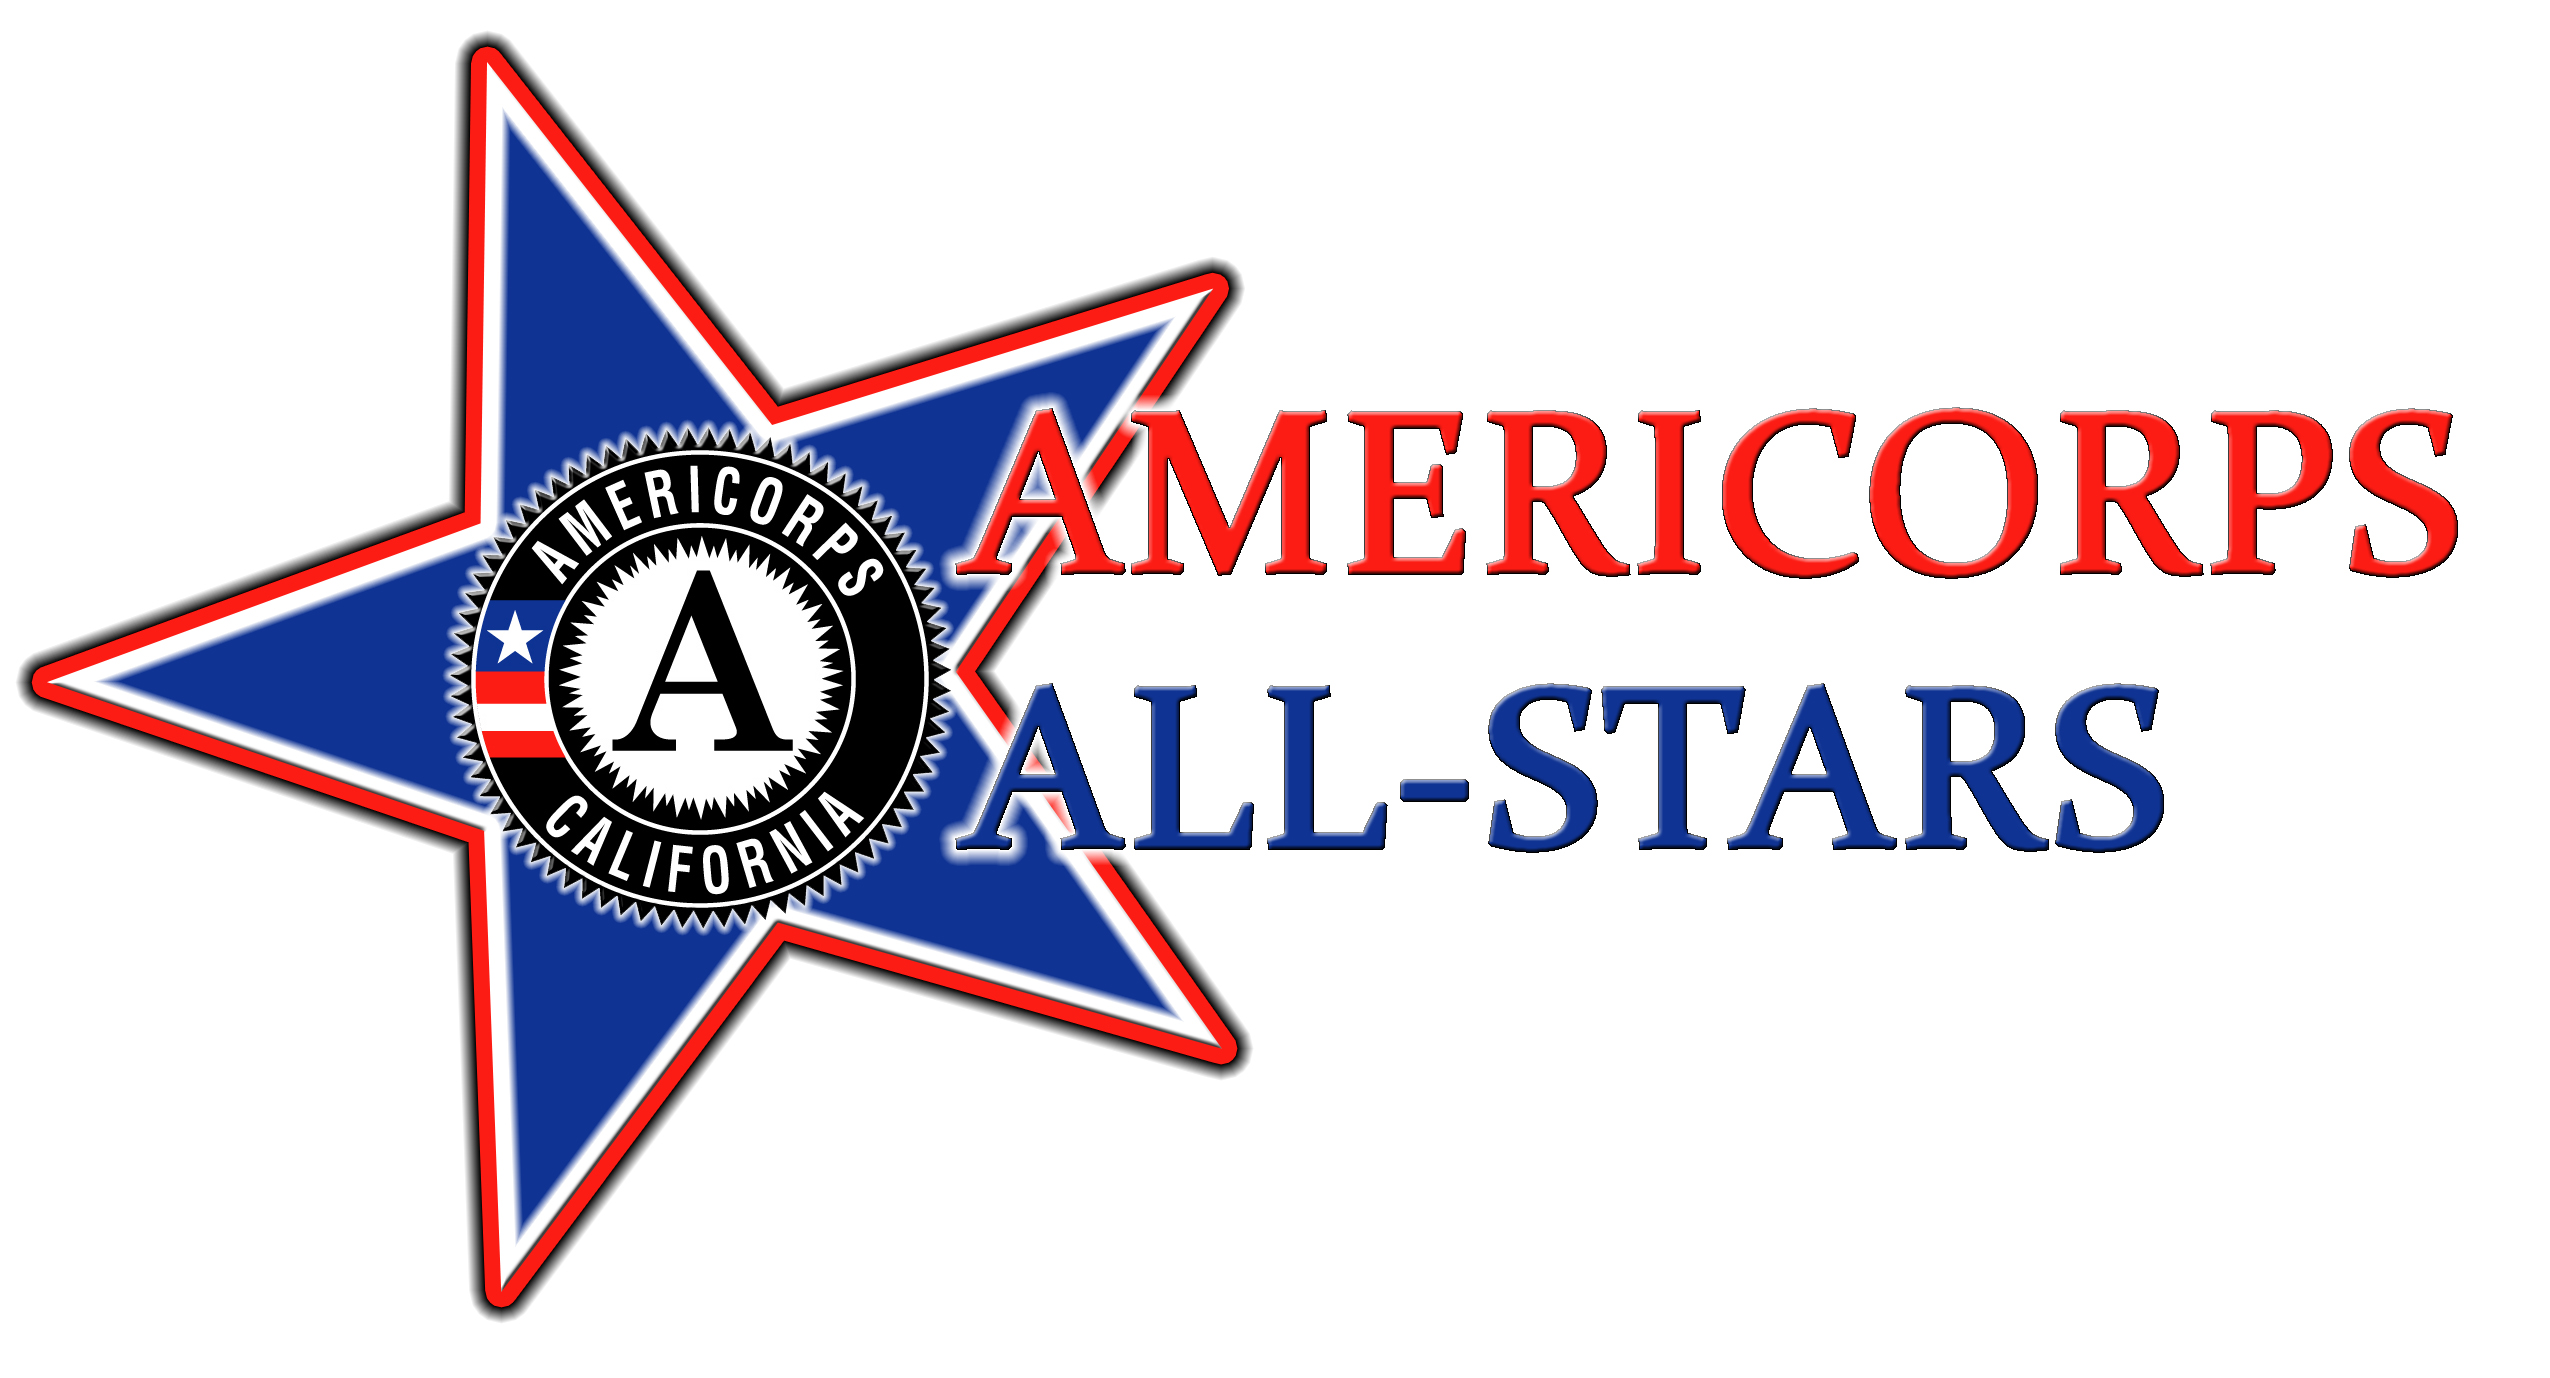 AmeriCorps All-Star Logo